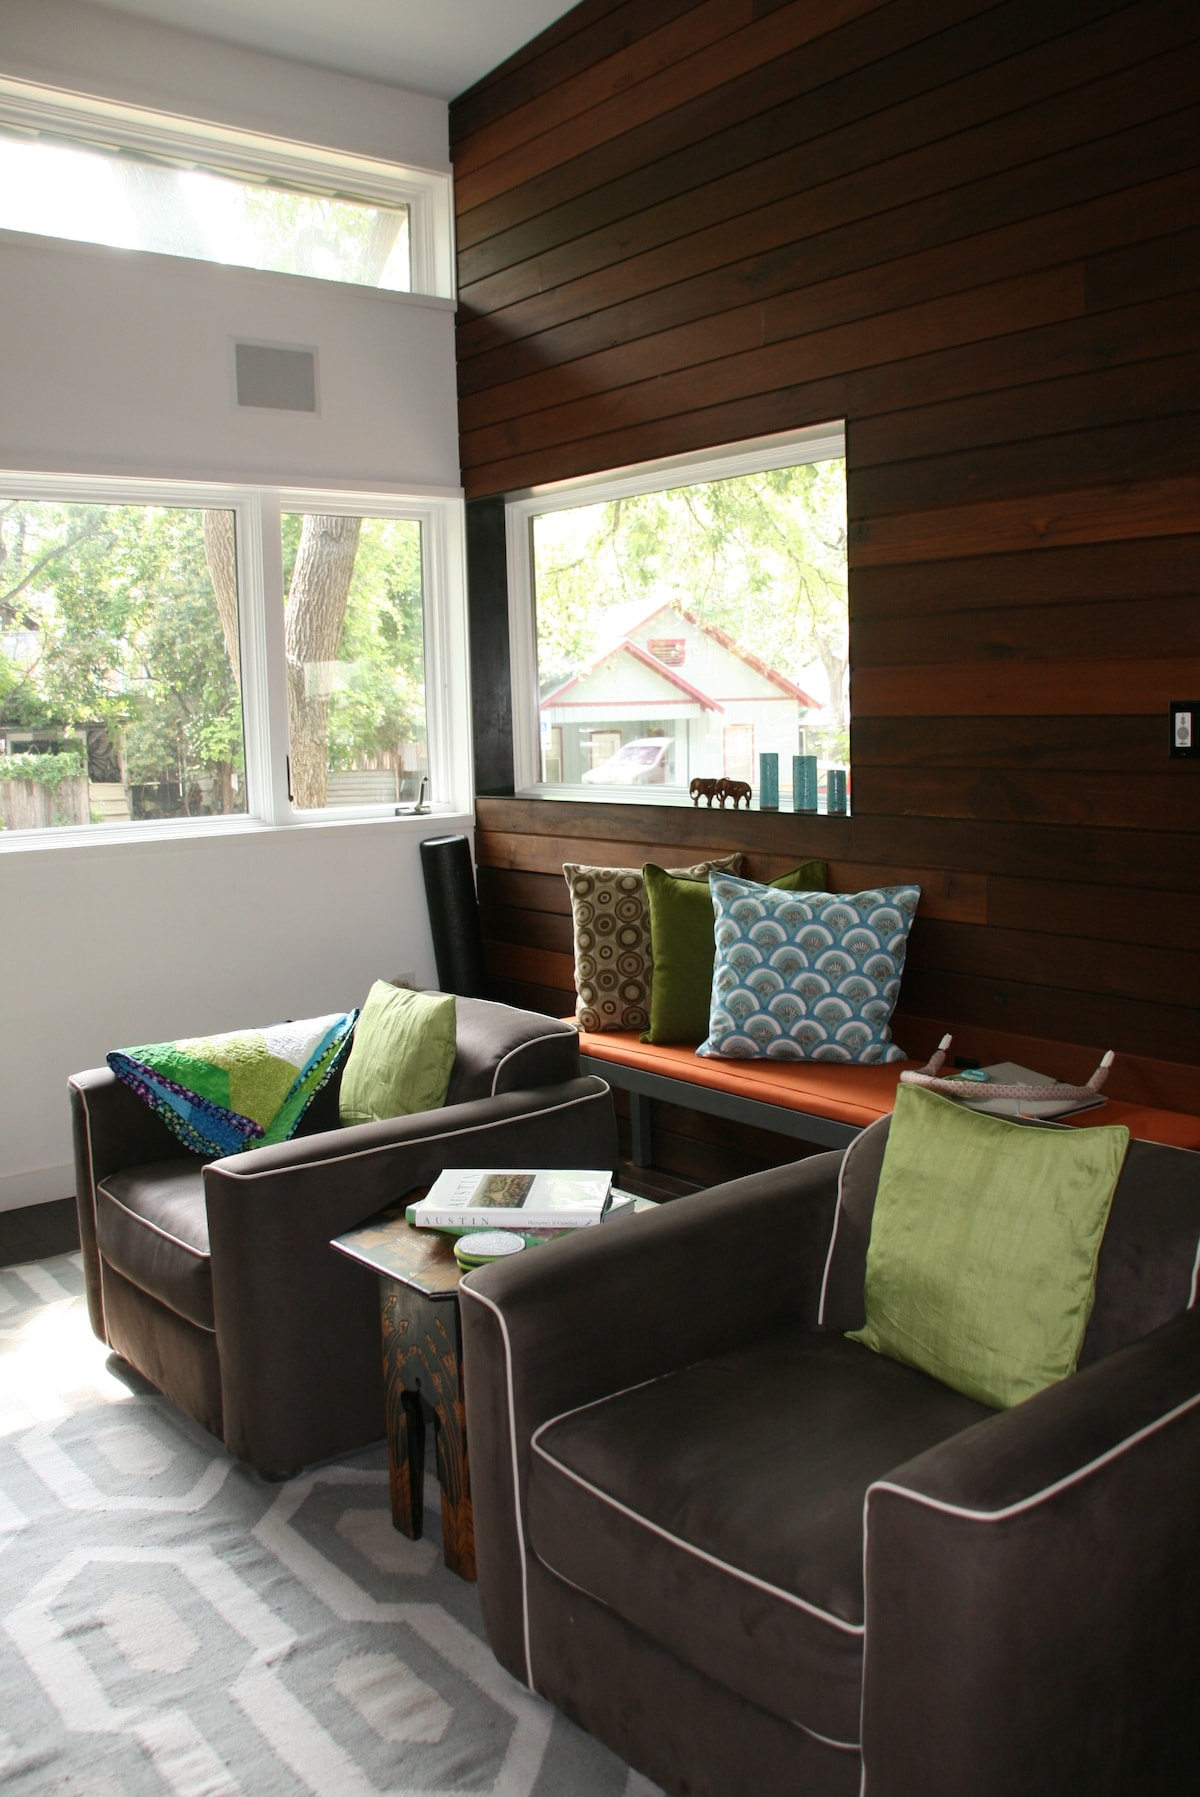 Living area- natural light but house stays cool since indirect